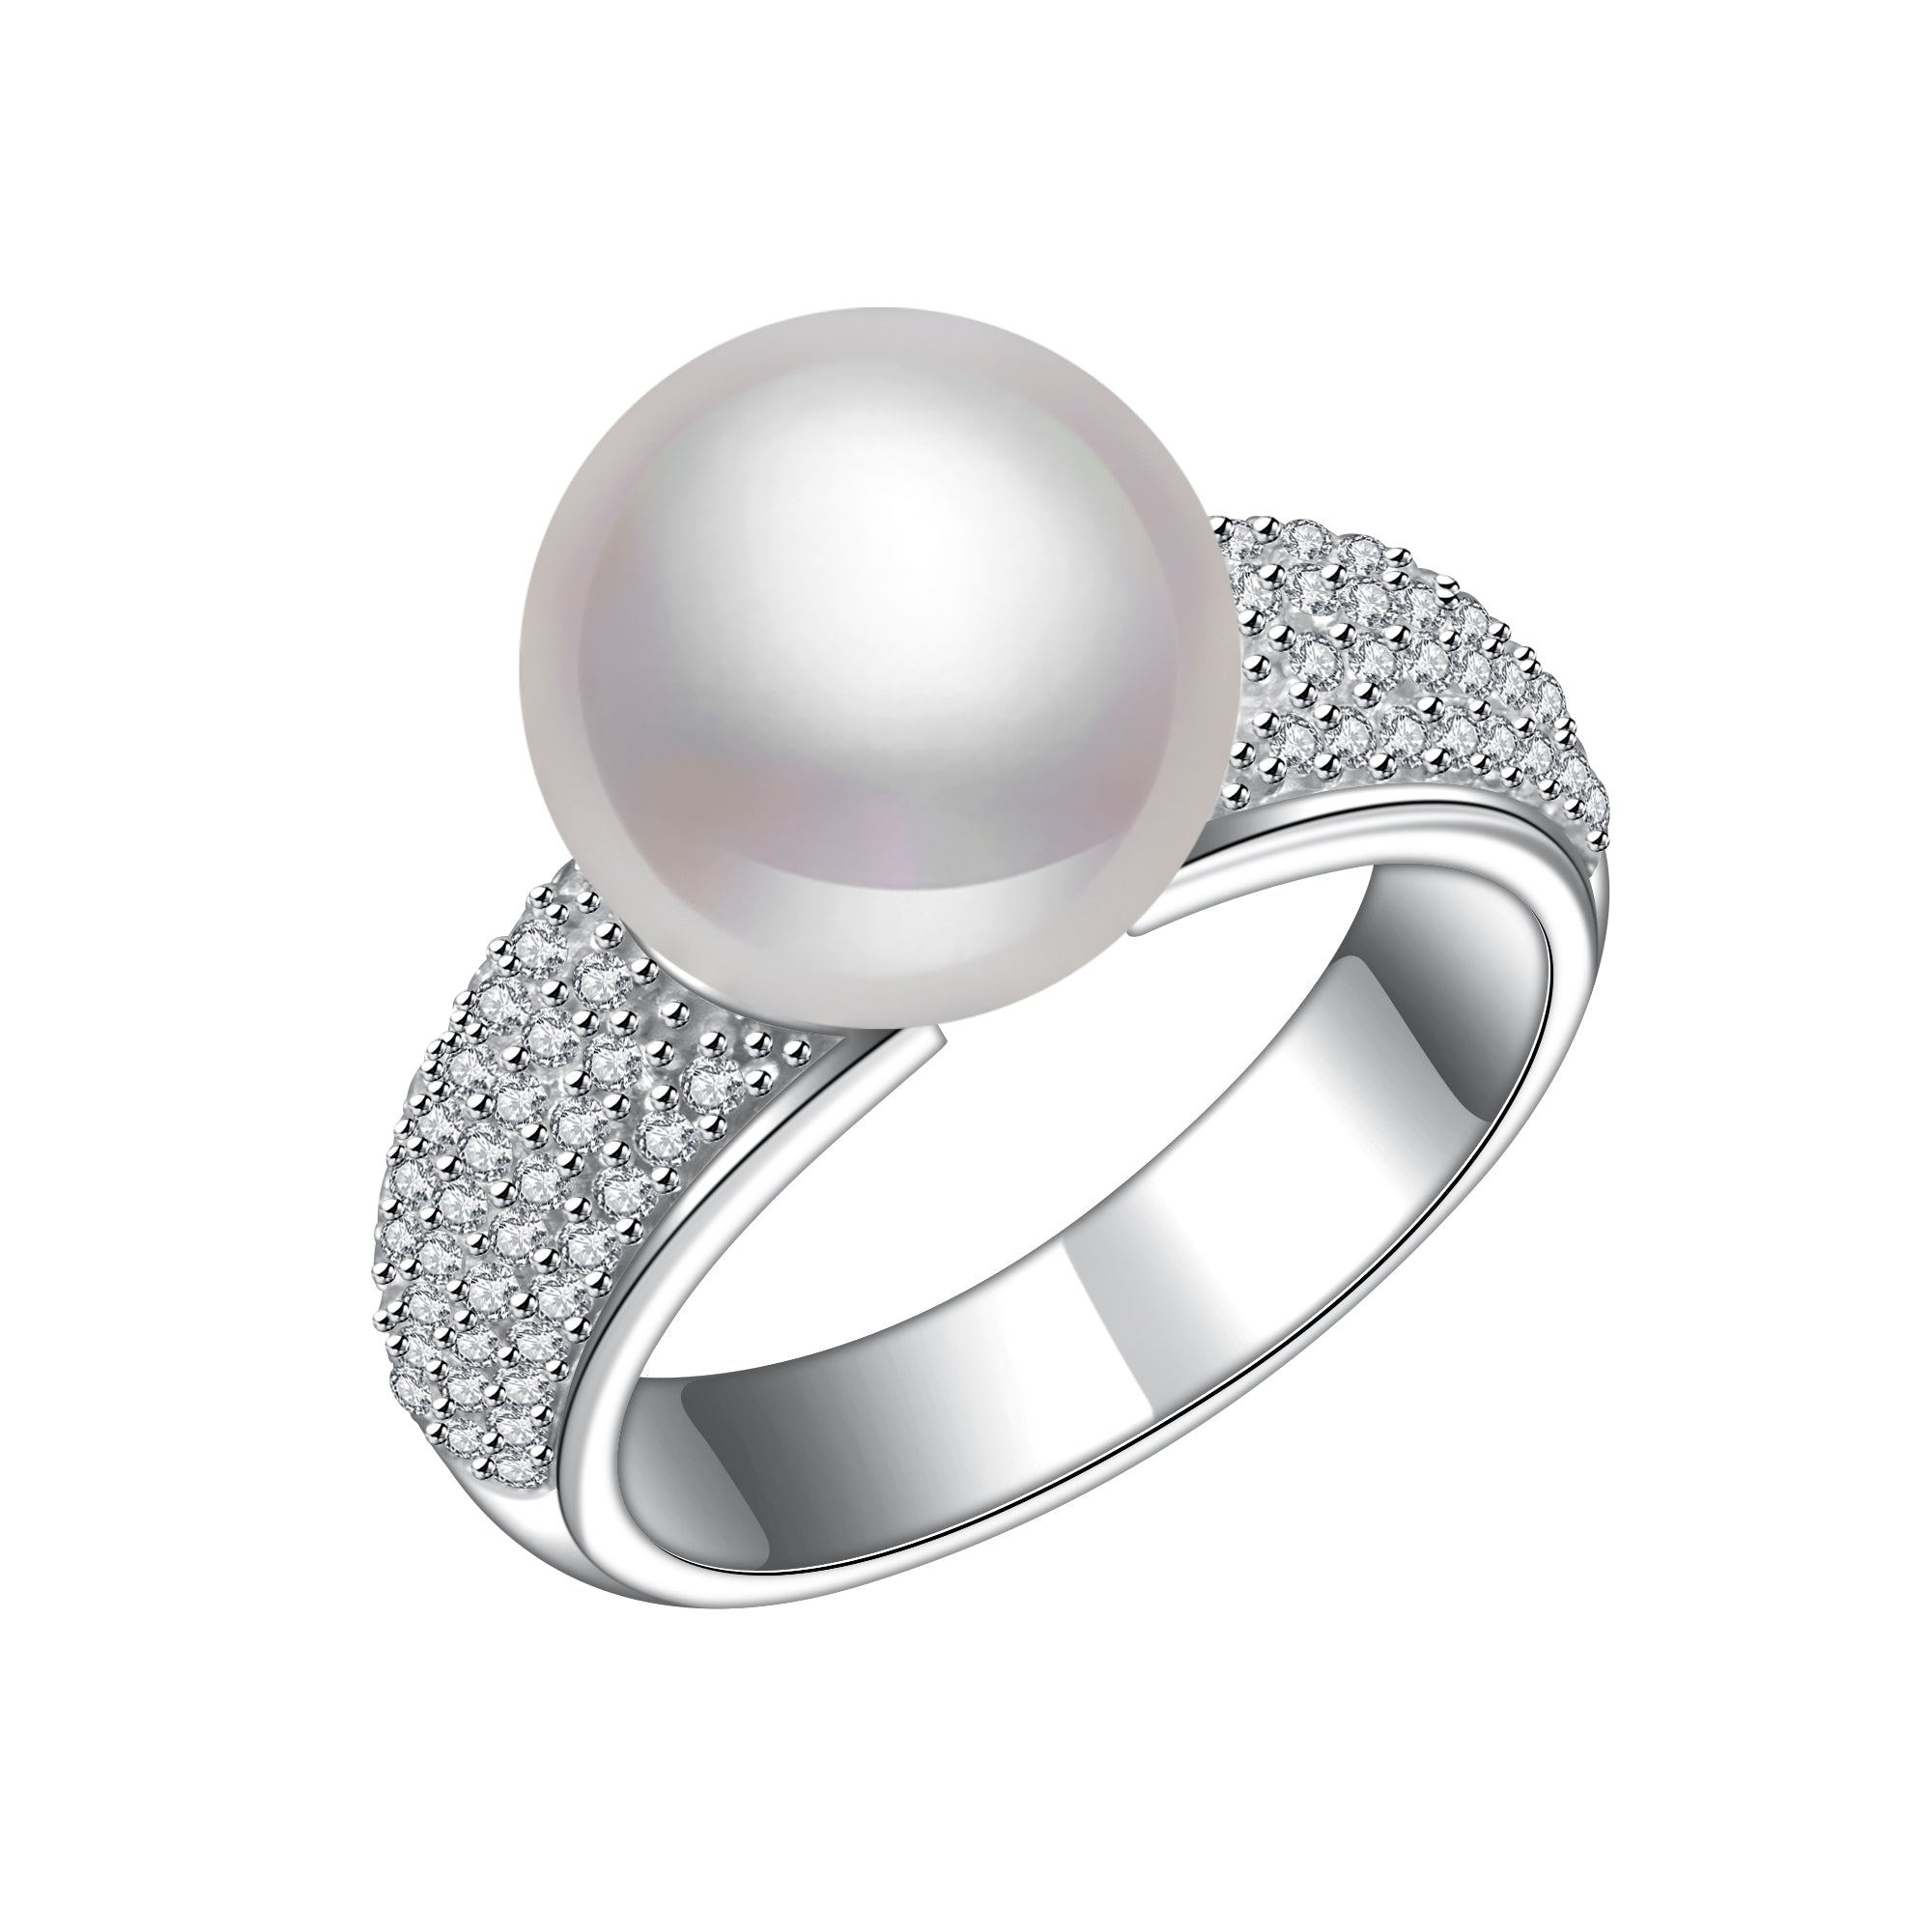 en diamond freshwater rings pearl and birks pearlearrings earrings engagement drop splash